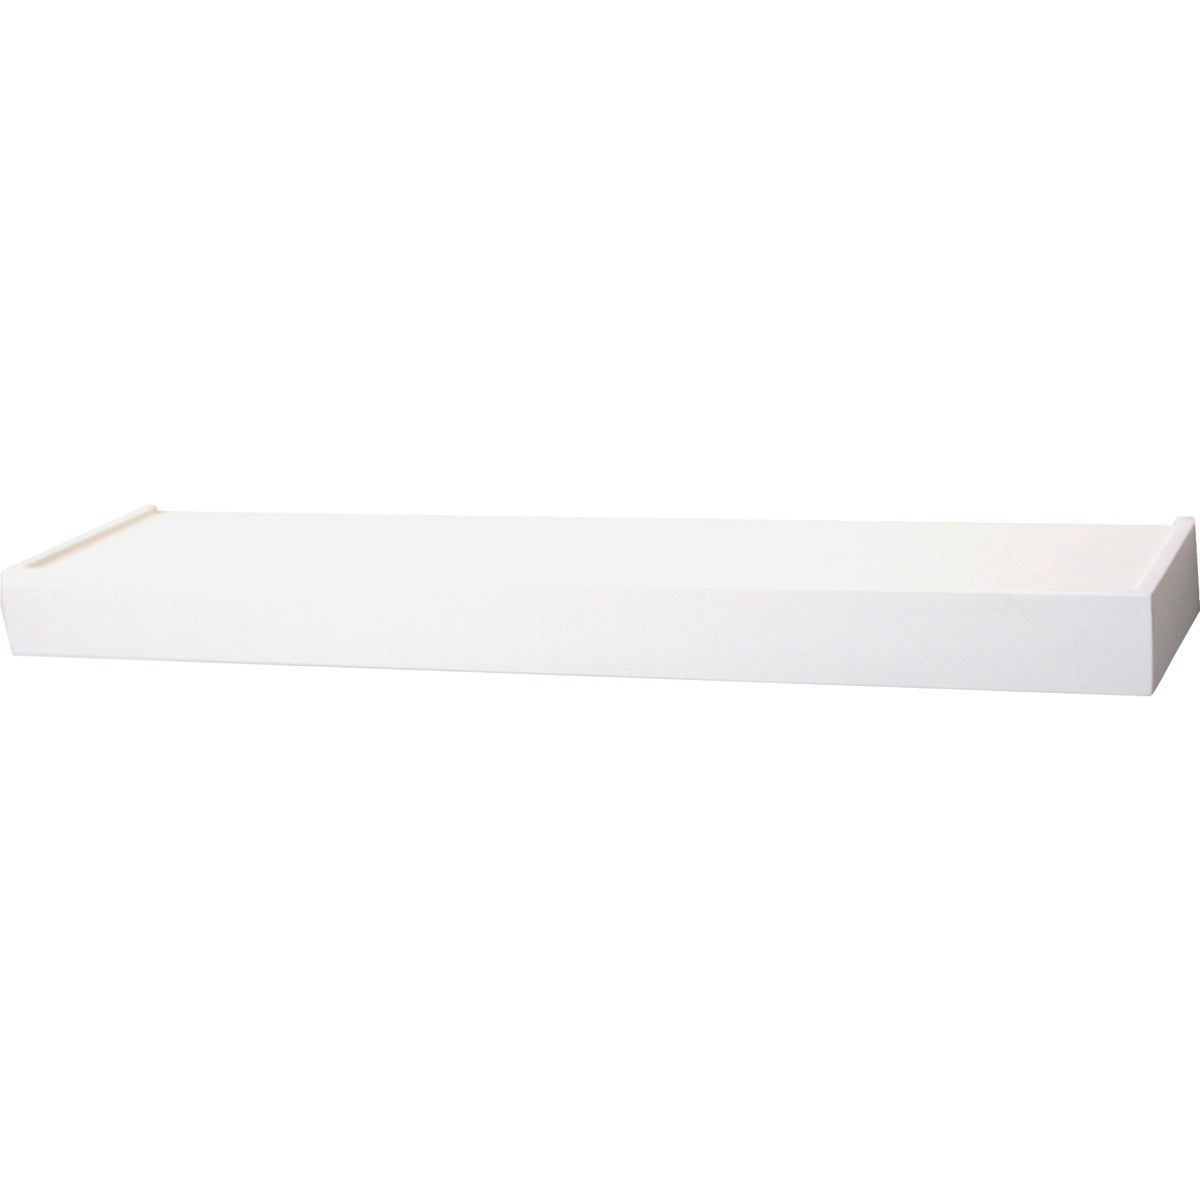 "36"" WHITE FLOATING SHELF"